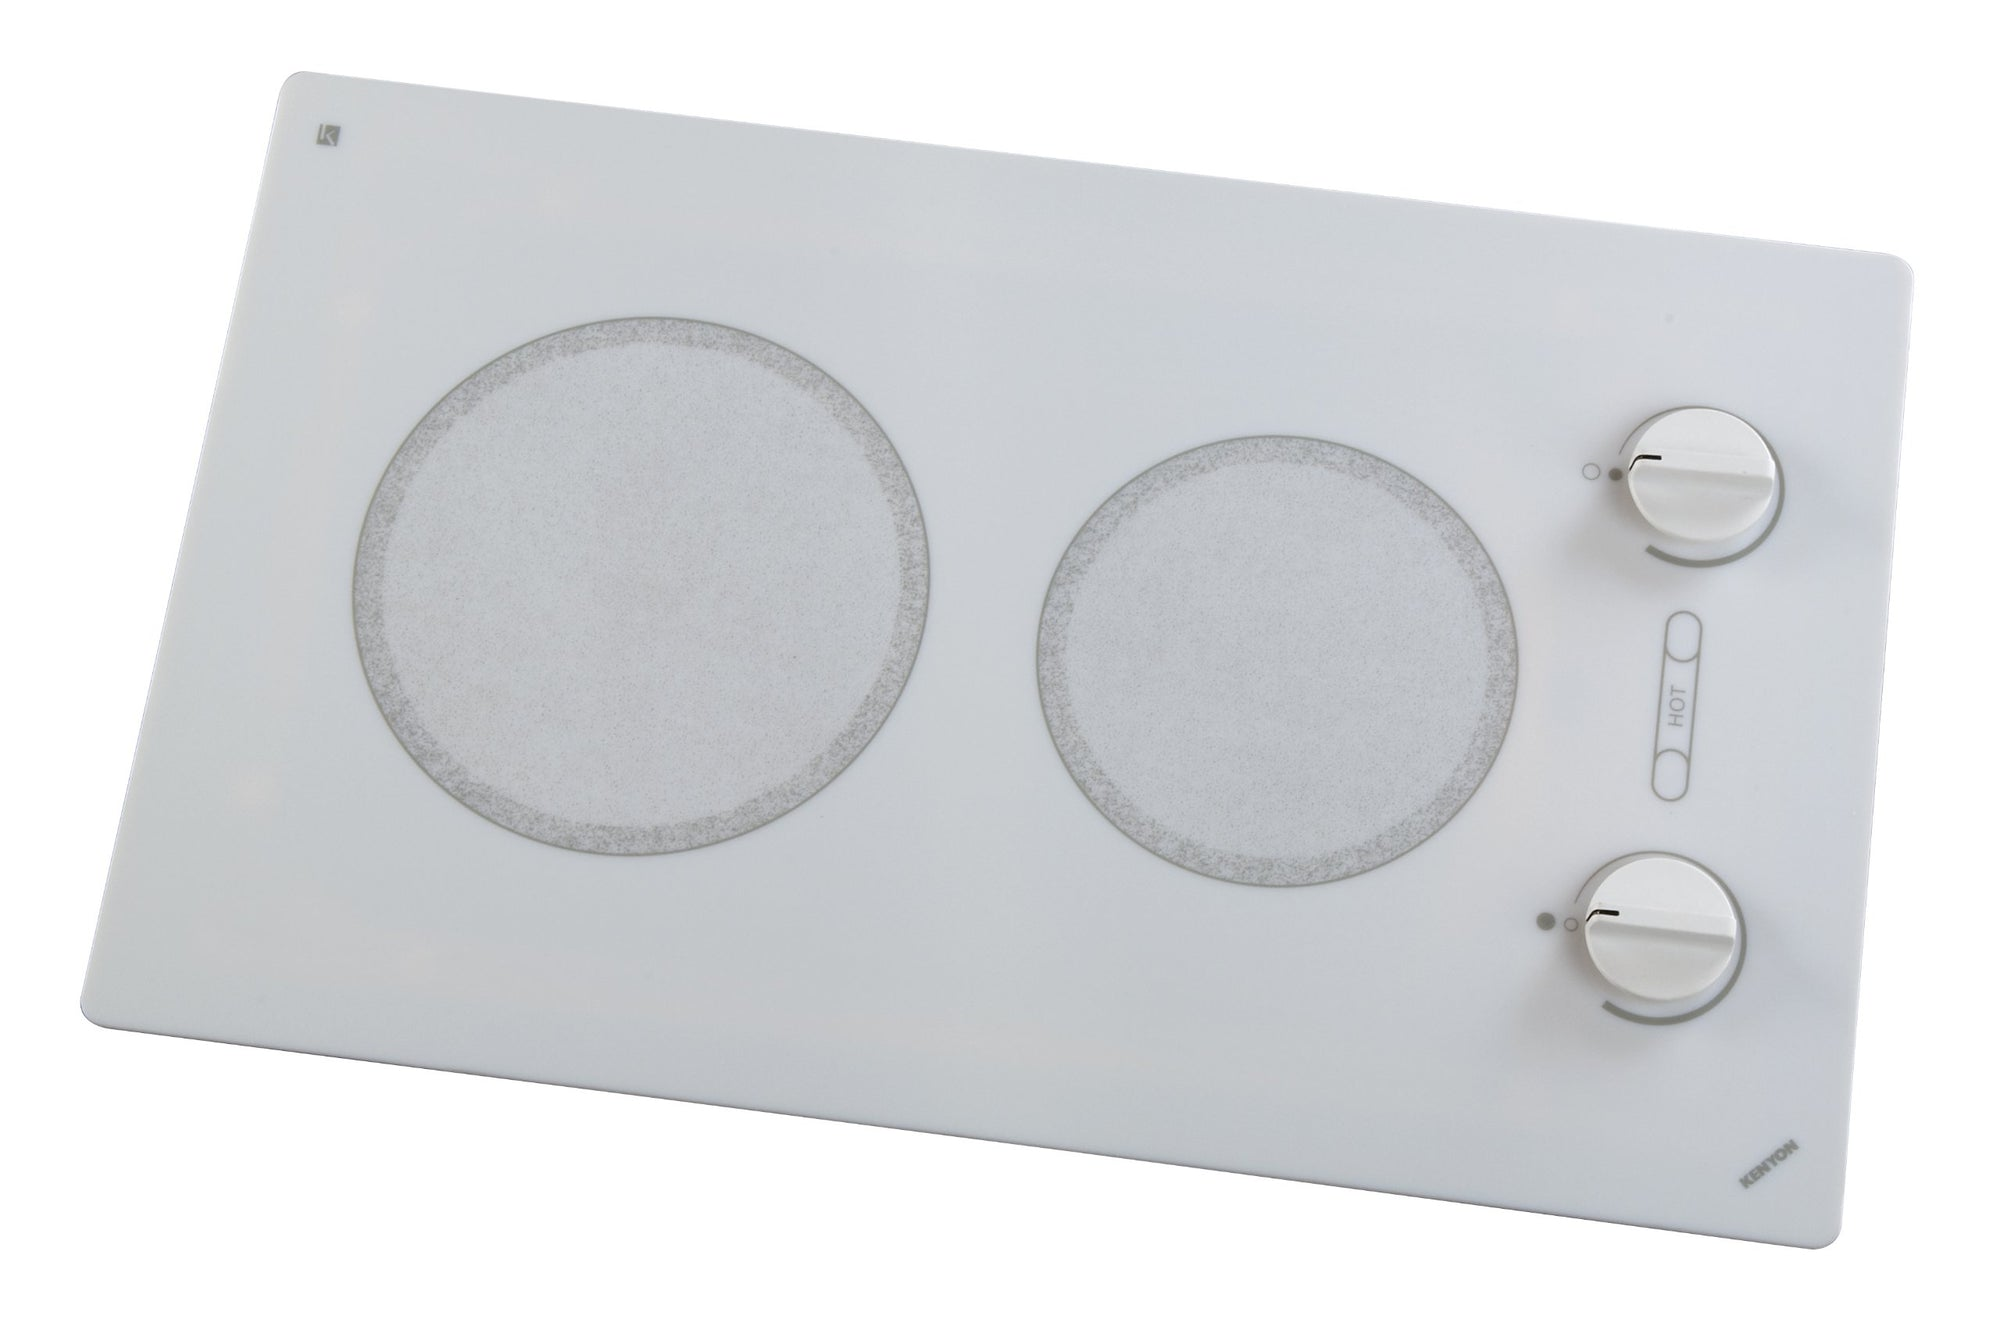 Kenyon B49510 6-1/2 and 8-Inch Alpine 2-Burner Cooktop with Analog Control UL, 120-volt, White